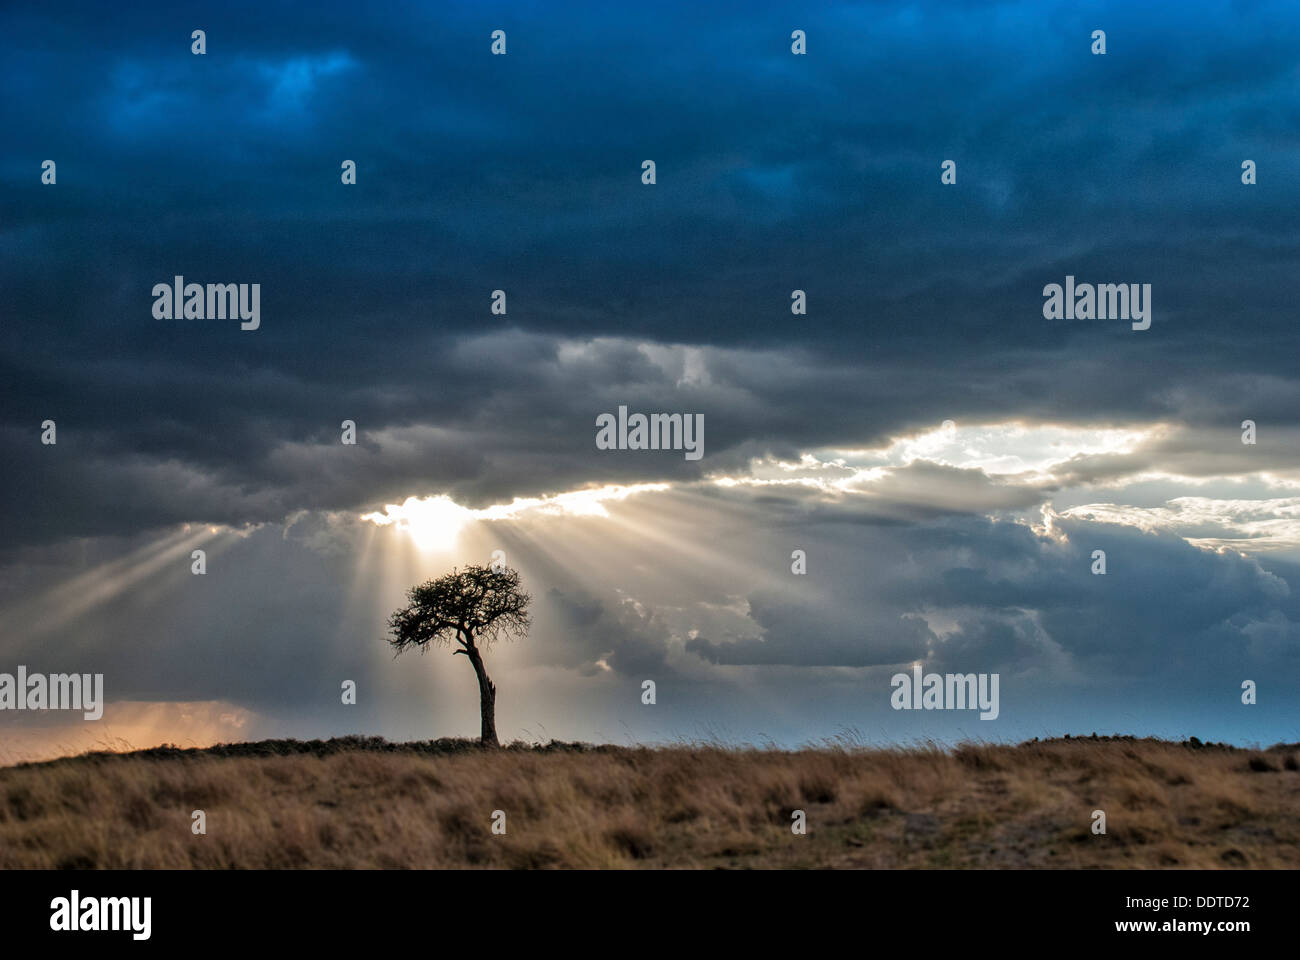 lone-acacia-tree-storm-and-sunbeams-masa